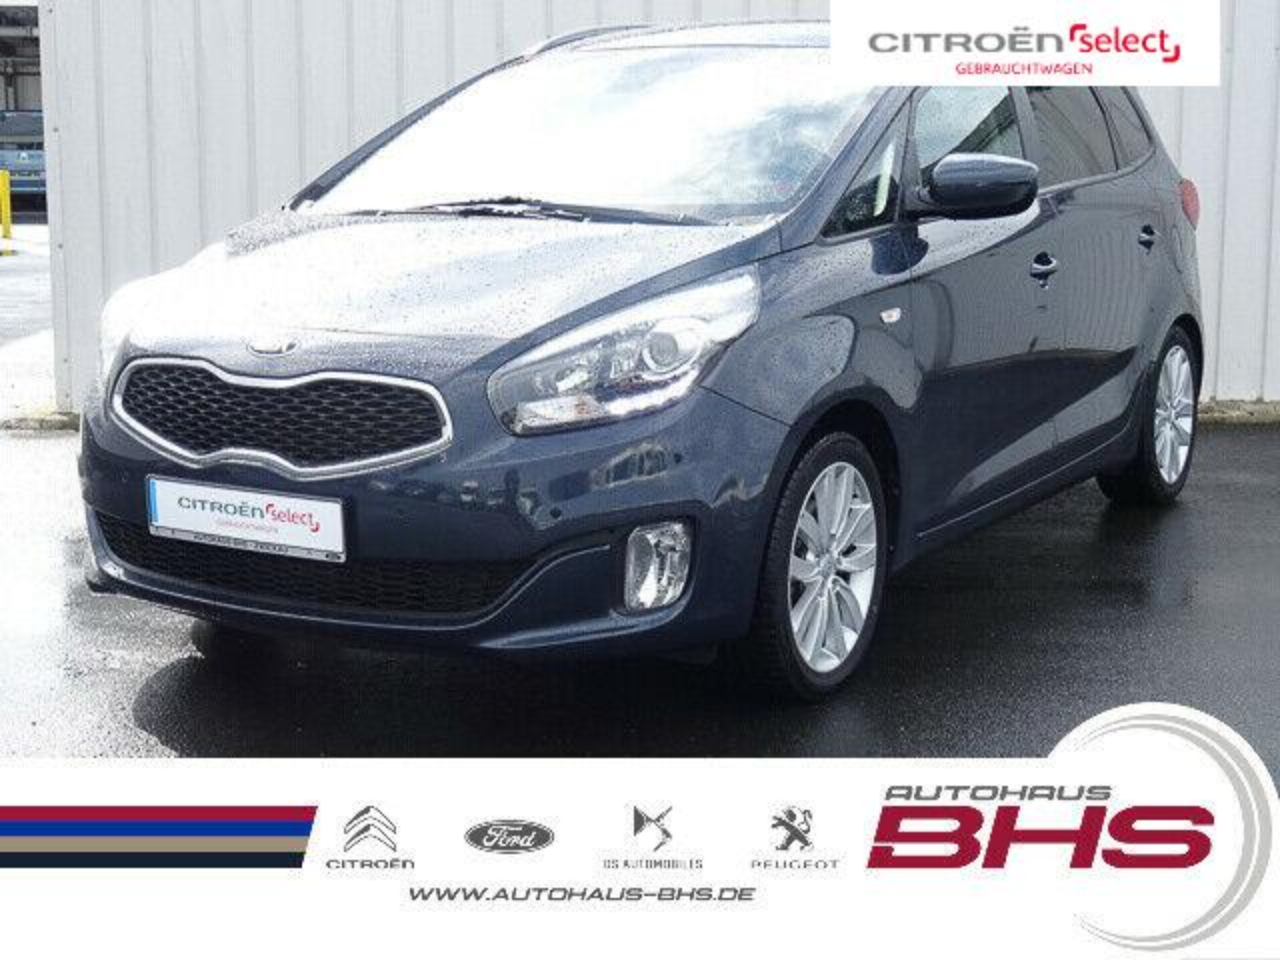 Kia Carens Dream Team 1.6 GDI